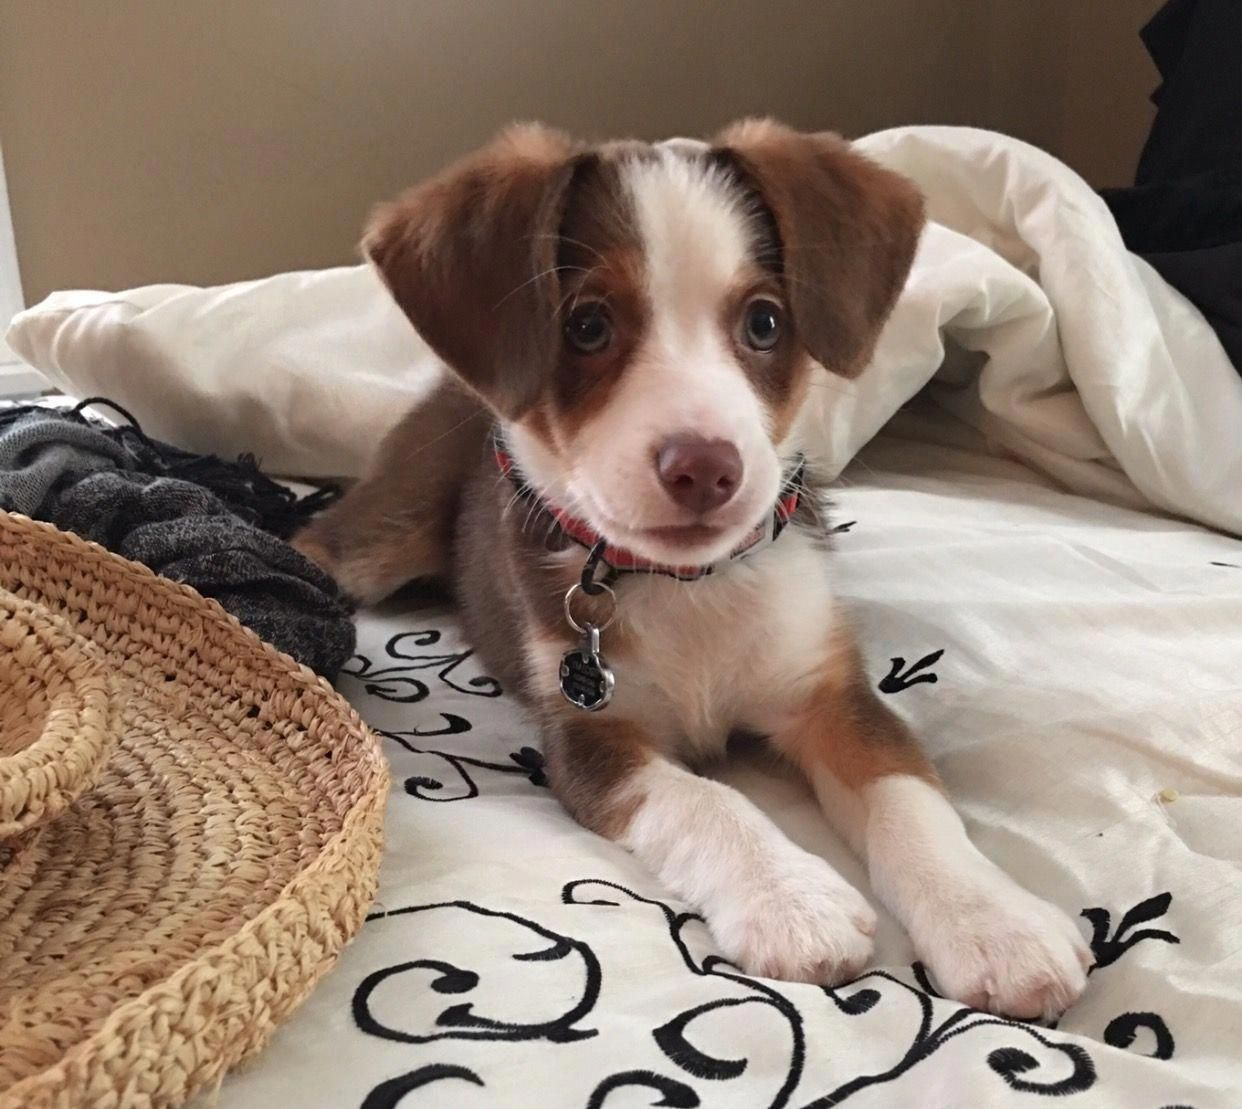 Everything We All Adore About The Aussie Pups Australianshepherdpuppies Australianshepherdlabmix Australian Shepherd Australian Shepherd Puppies Beagle Dog